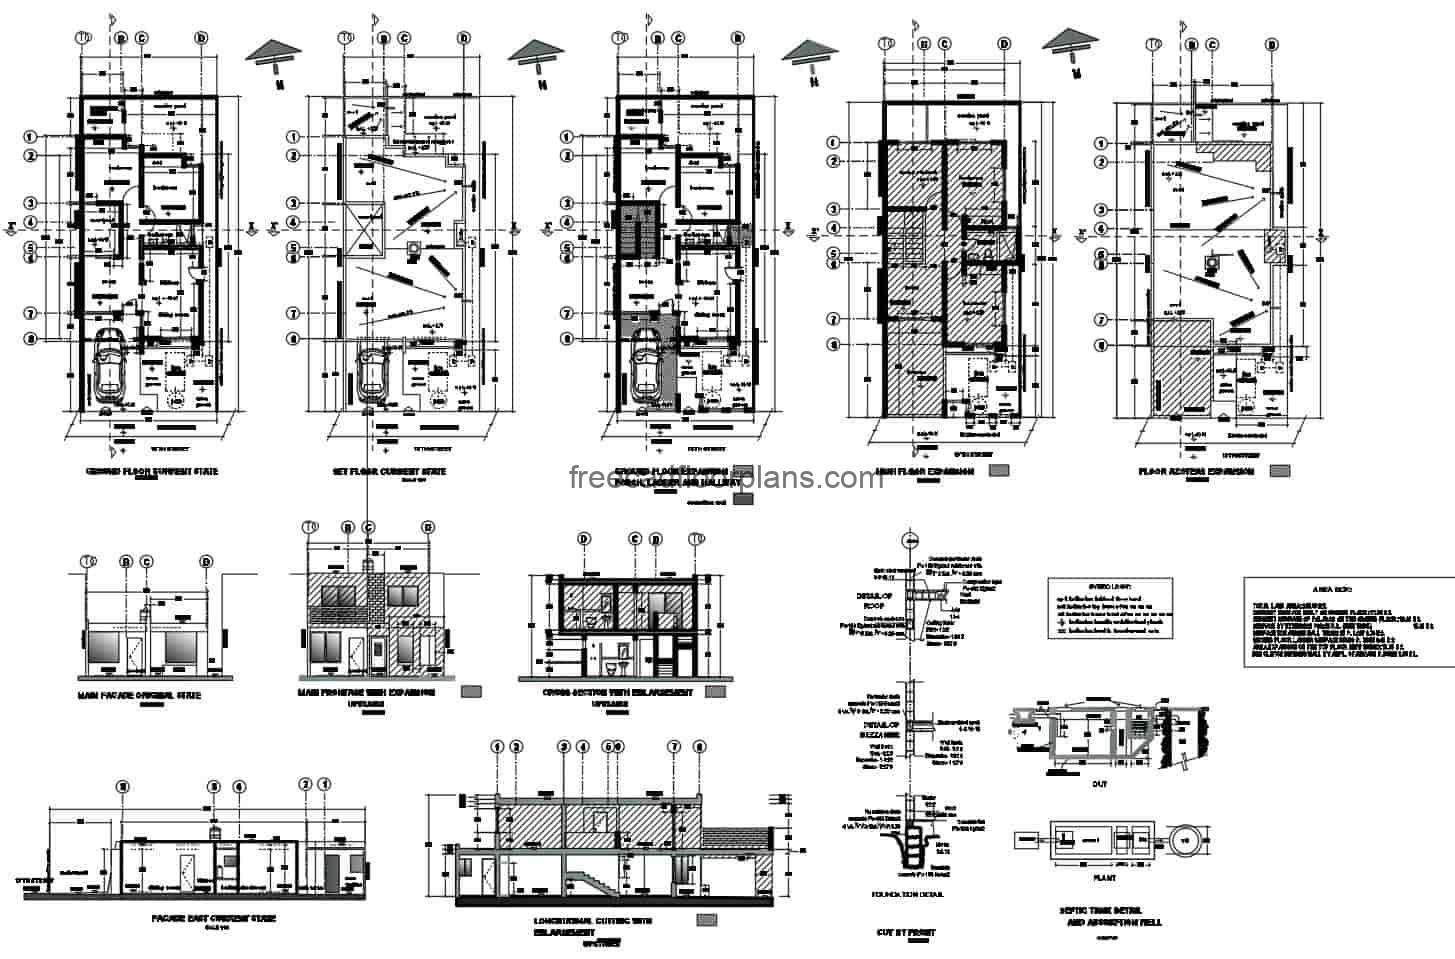 Complete project for the extension of the house, from one level to two levels, the preliminary project includes the survey of original plans of the project, facade plans, elevation sections, hydraulic plans and structural details. Architectural and dimensional blueprints for free download, DWG Autoca